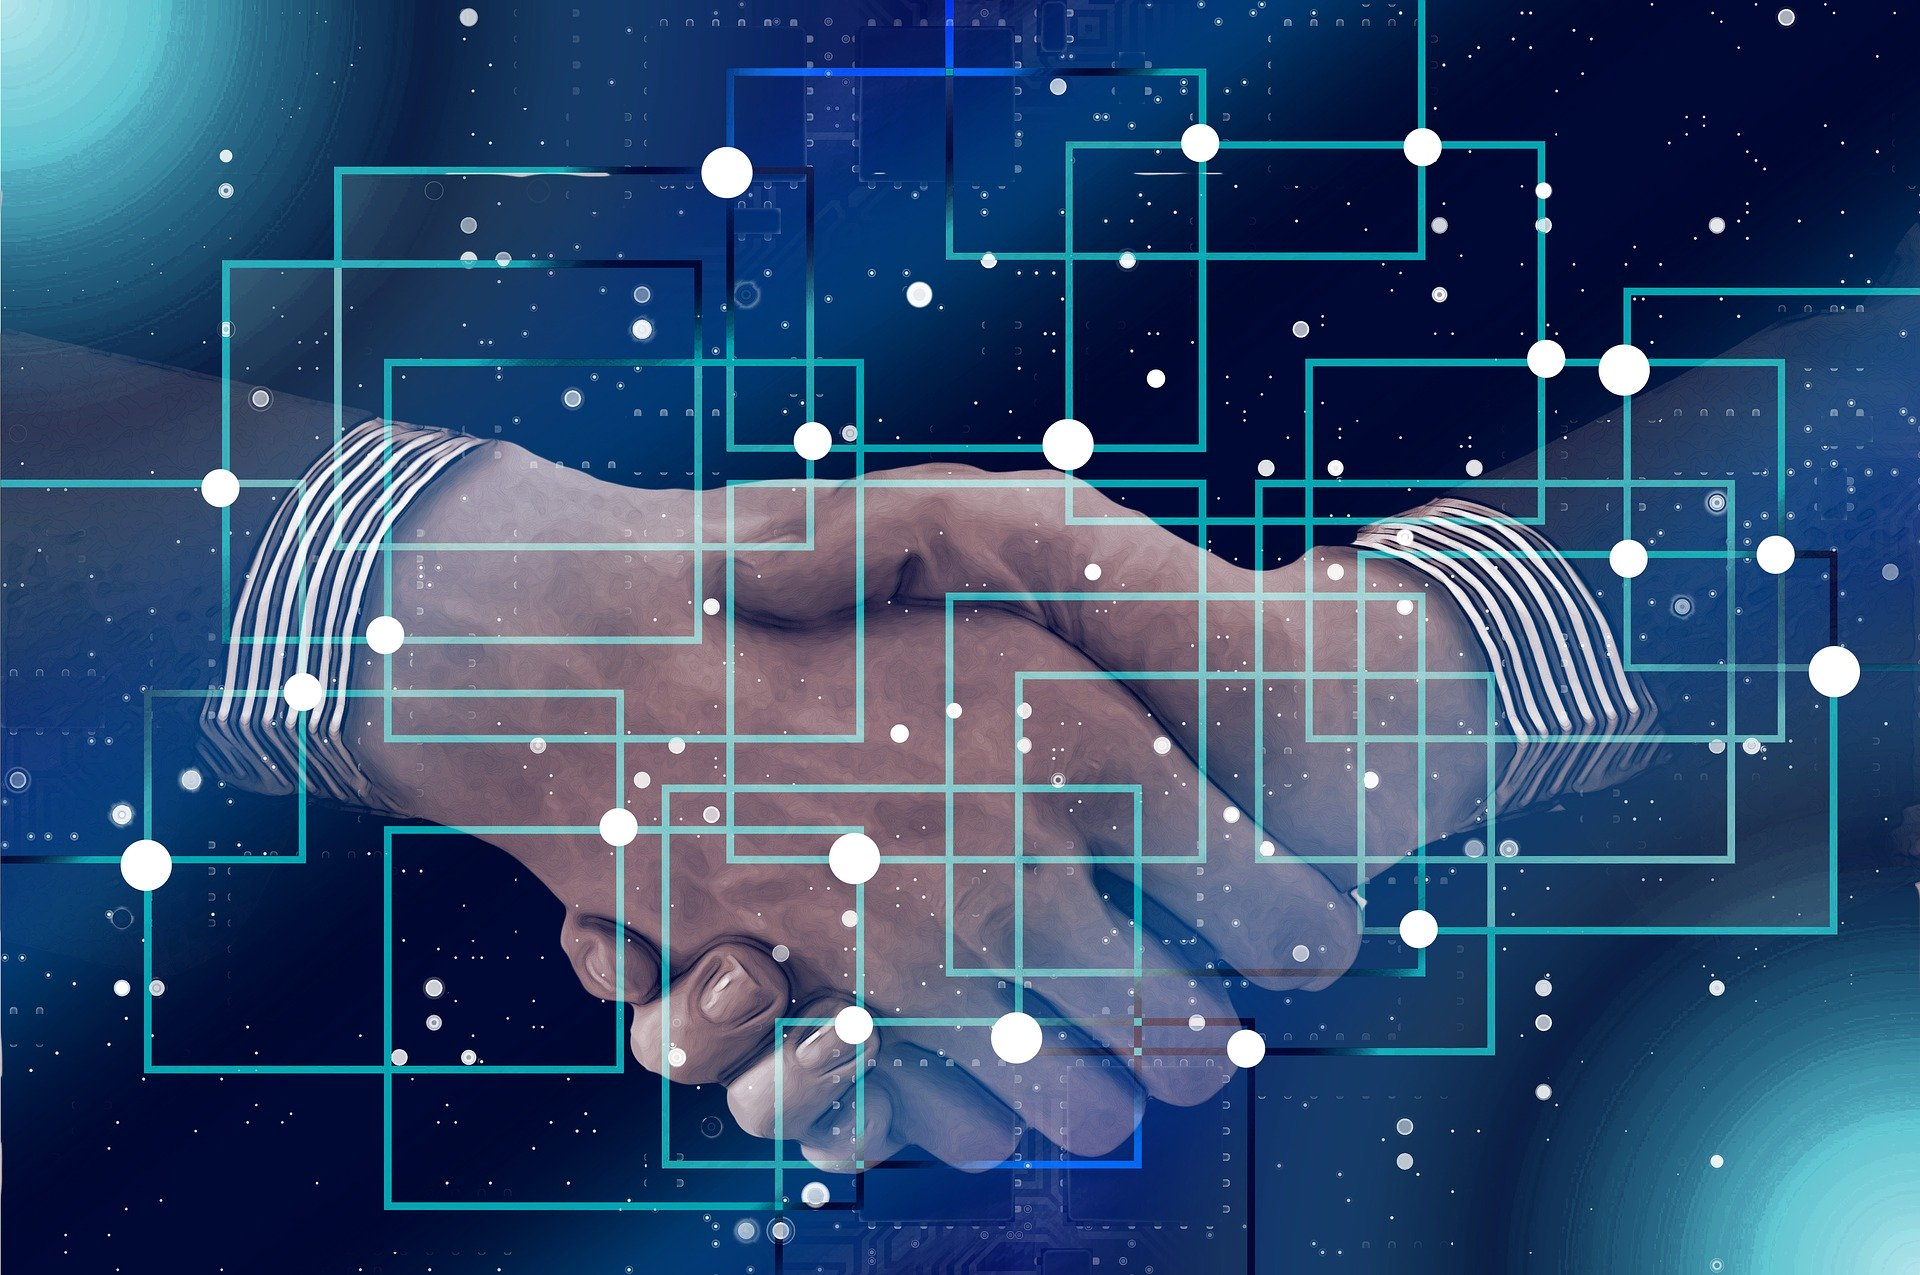 Equinix Inc. Acquires GPX Global Systems India in a $161 million deal